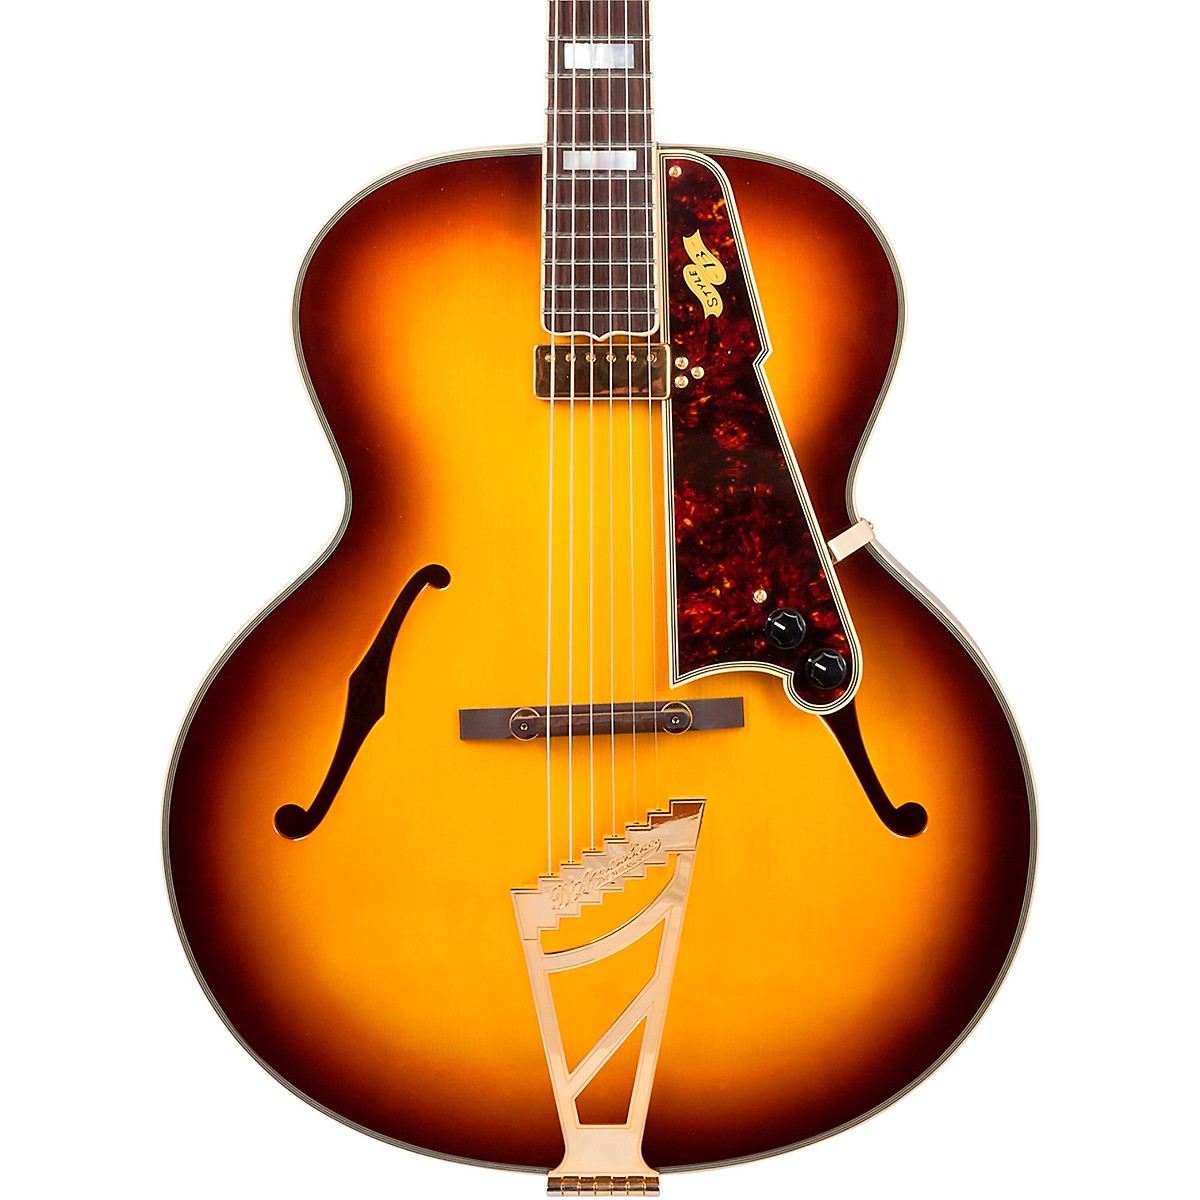 D'Angelico Excel Style B Hollowbody Electric Guitar